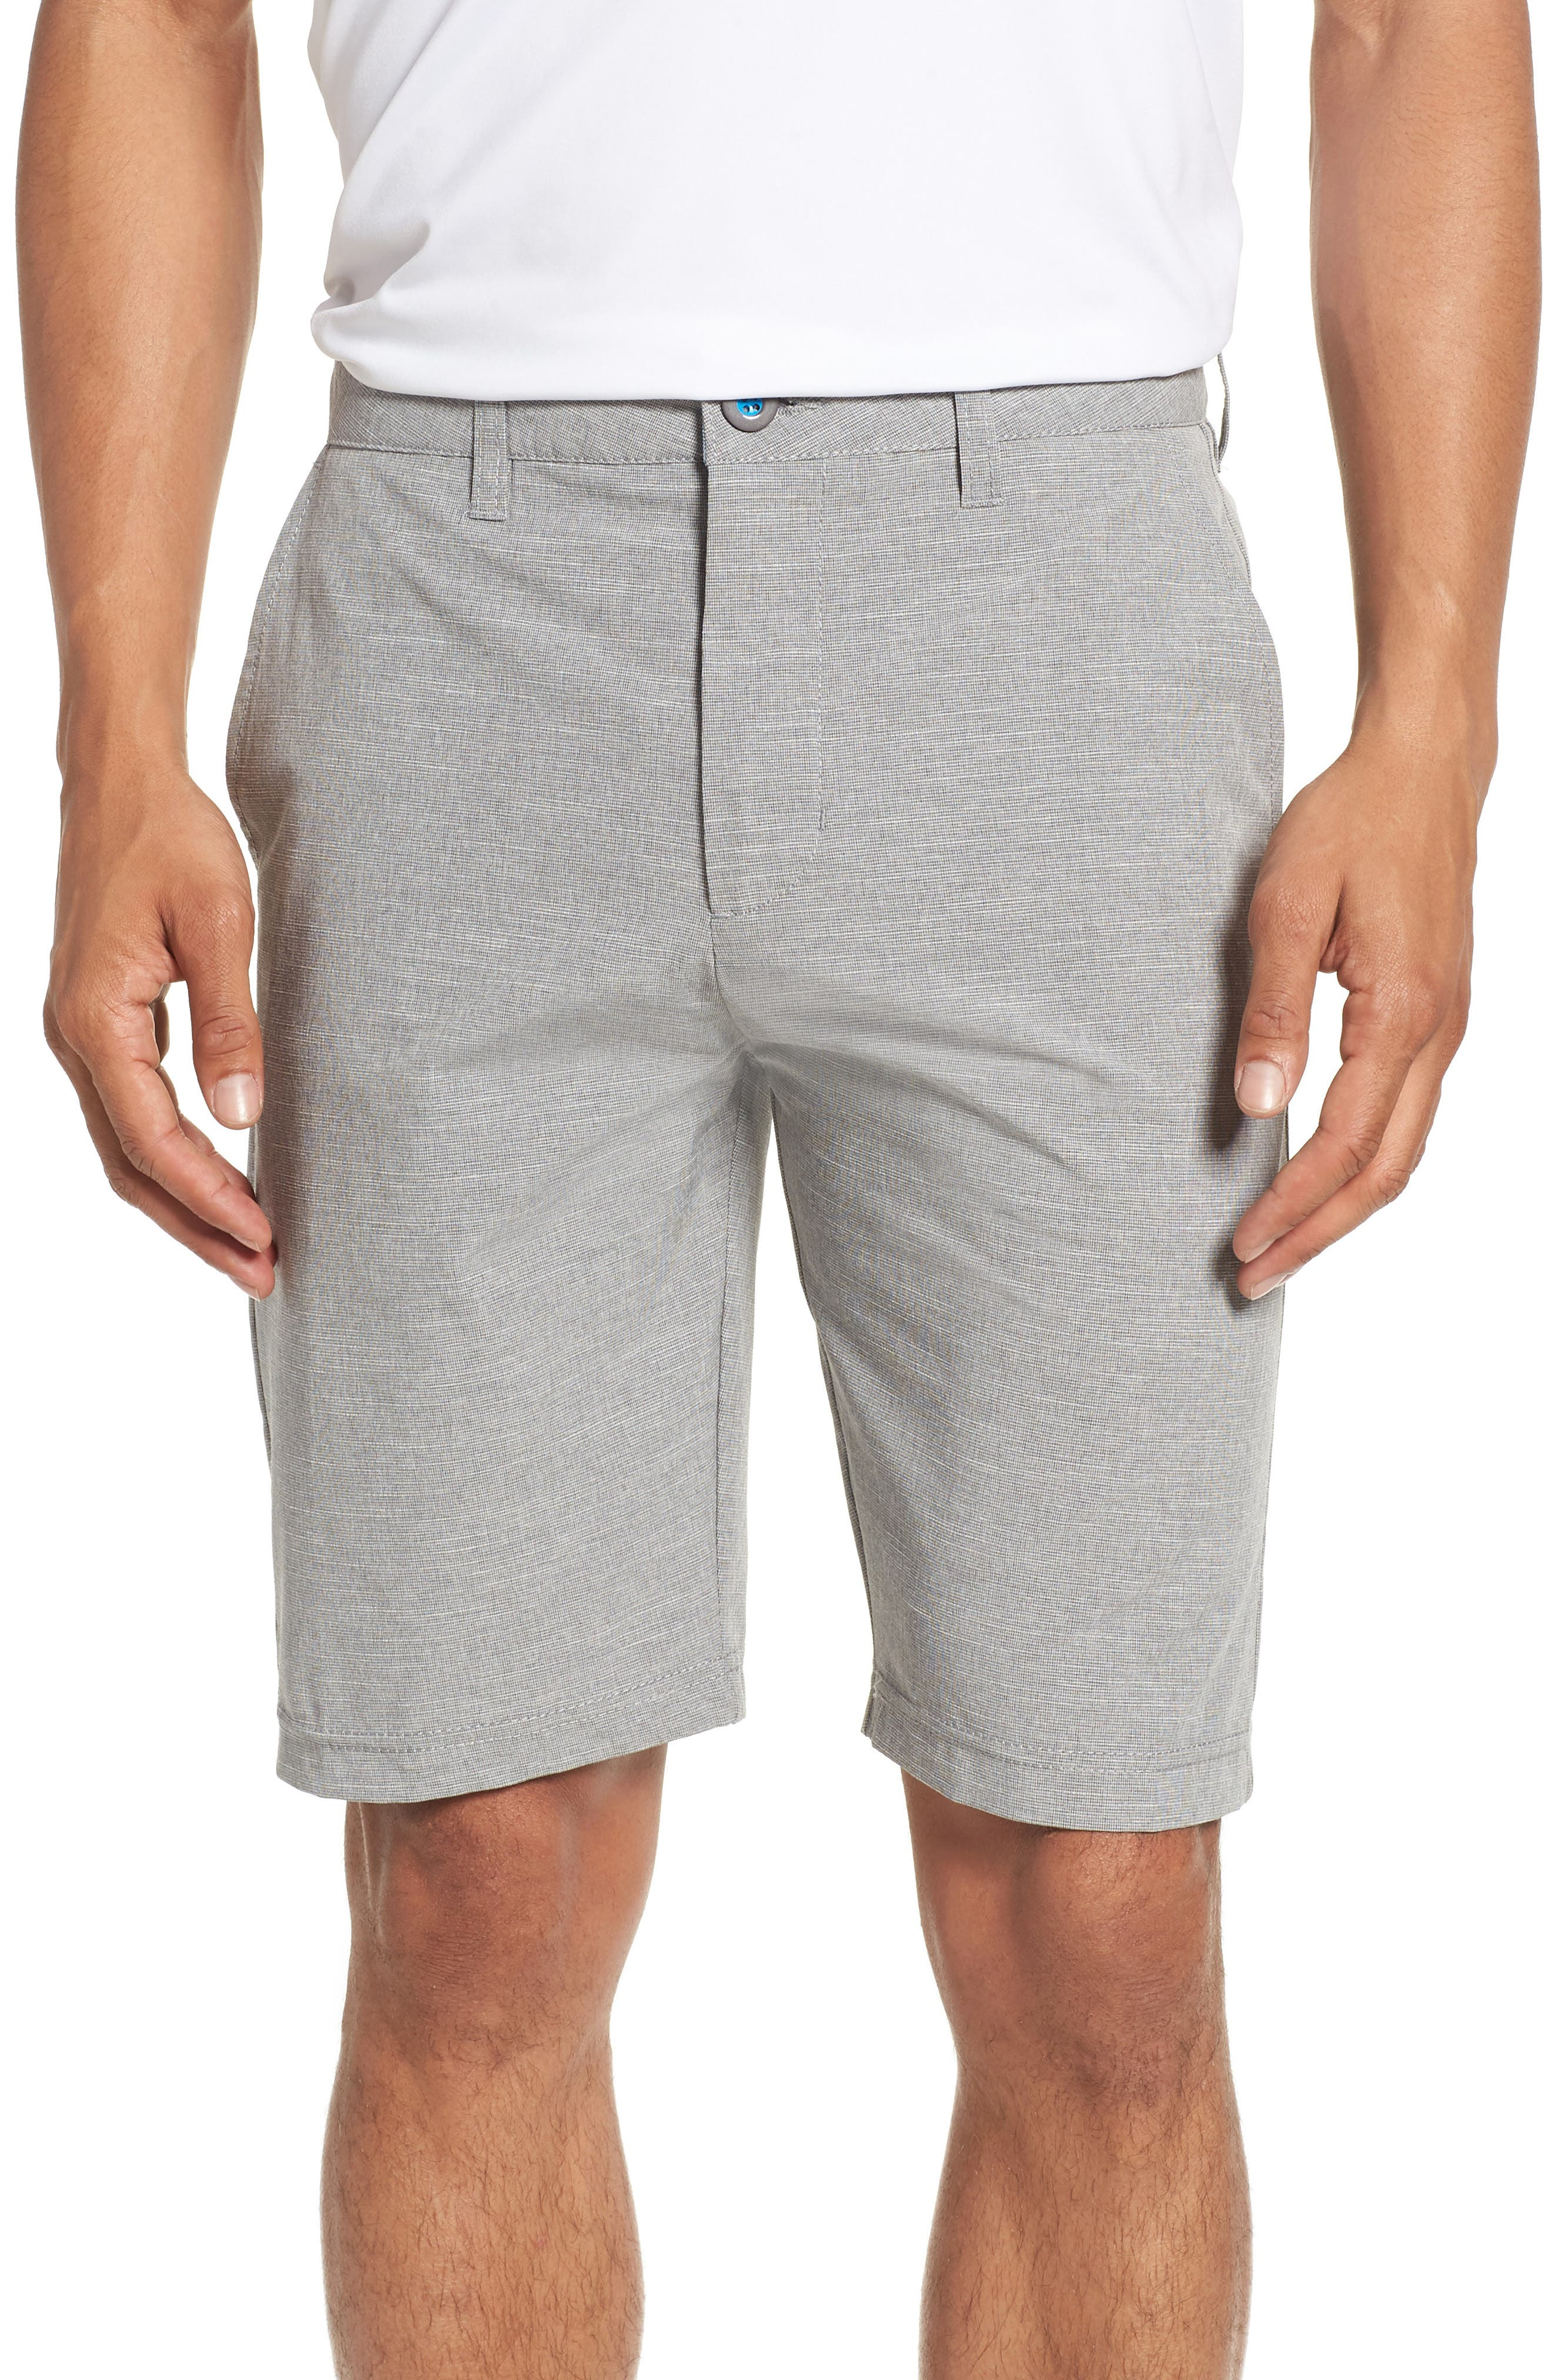 DEVEREUX Cruiser Hybrid Shorts, Main, color, STEEL